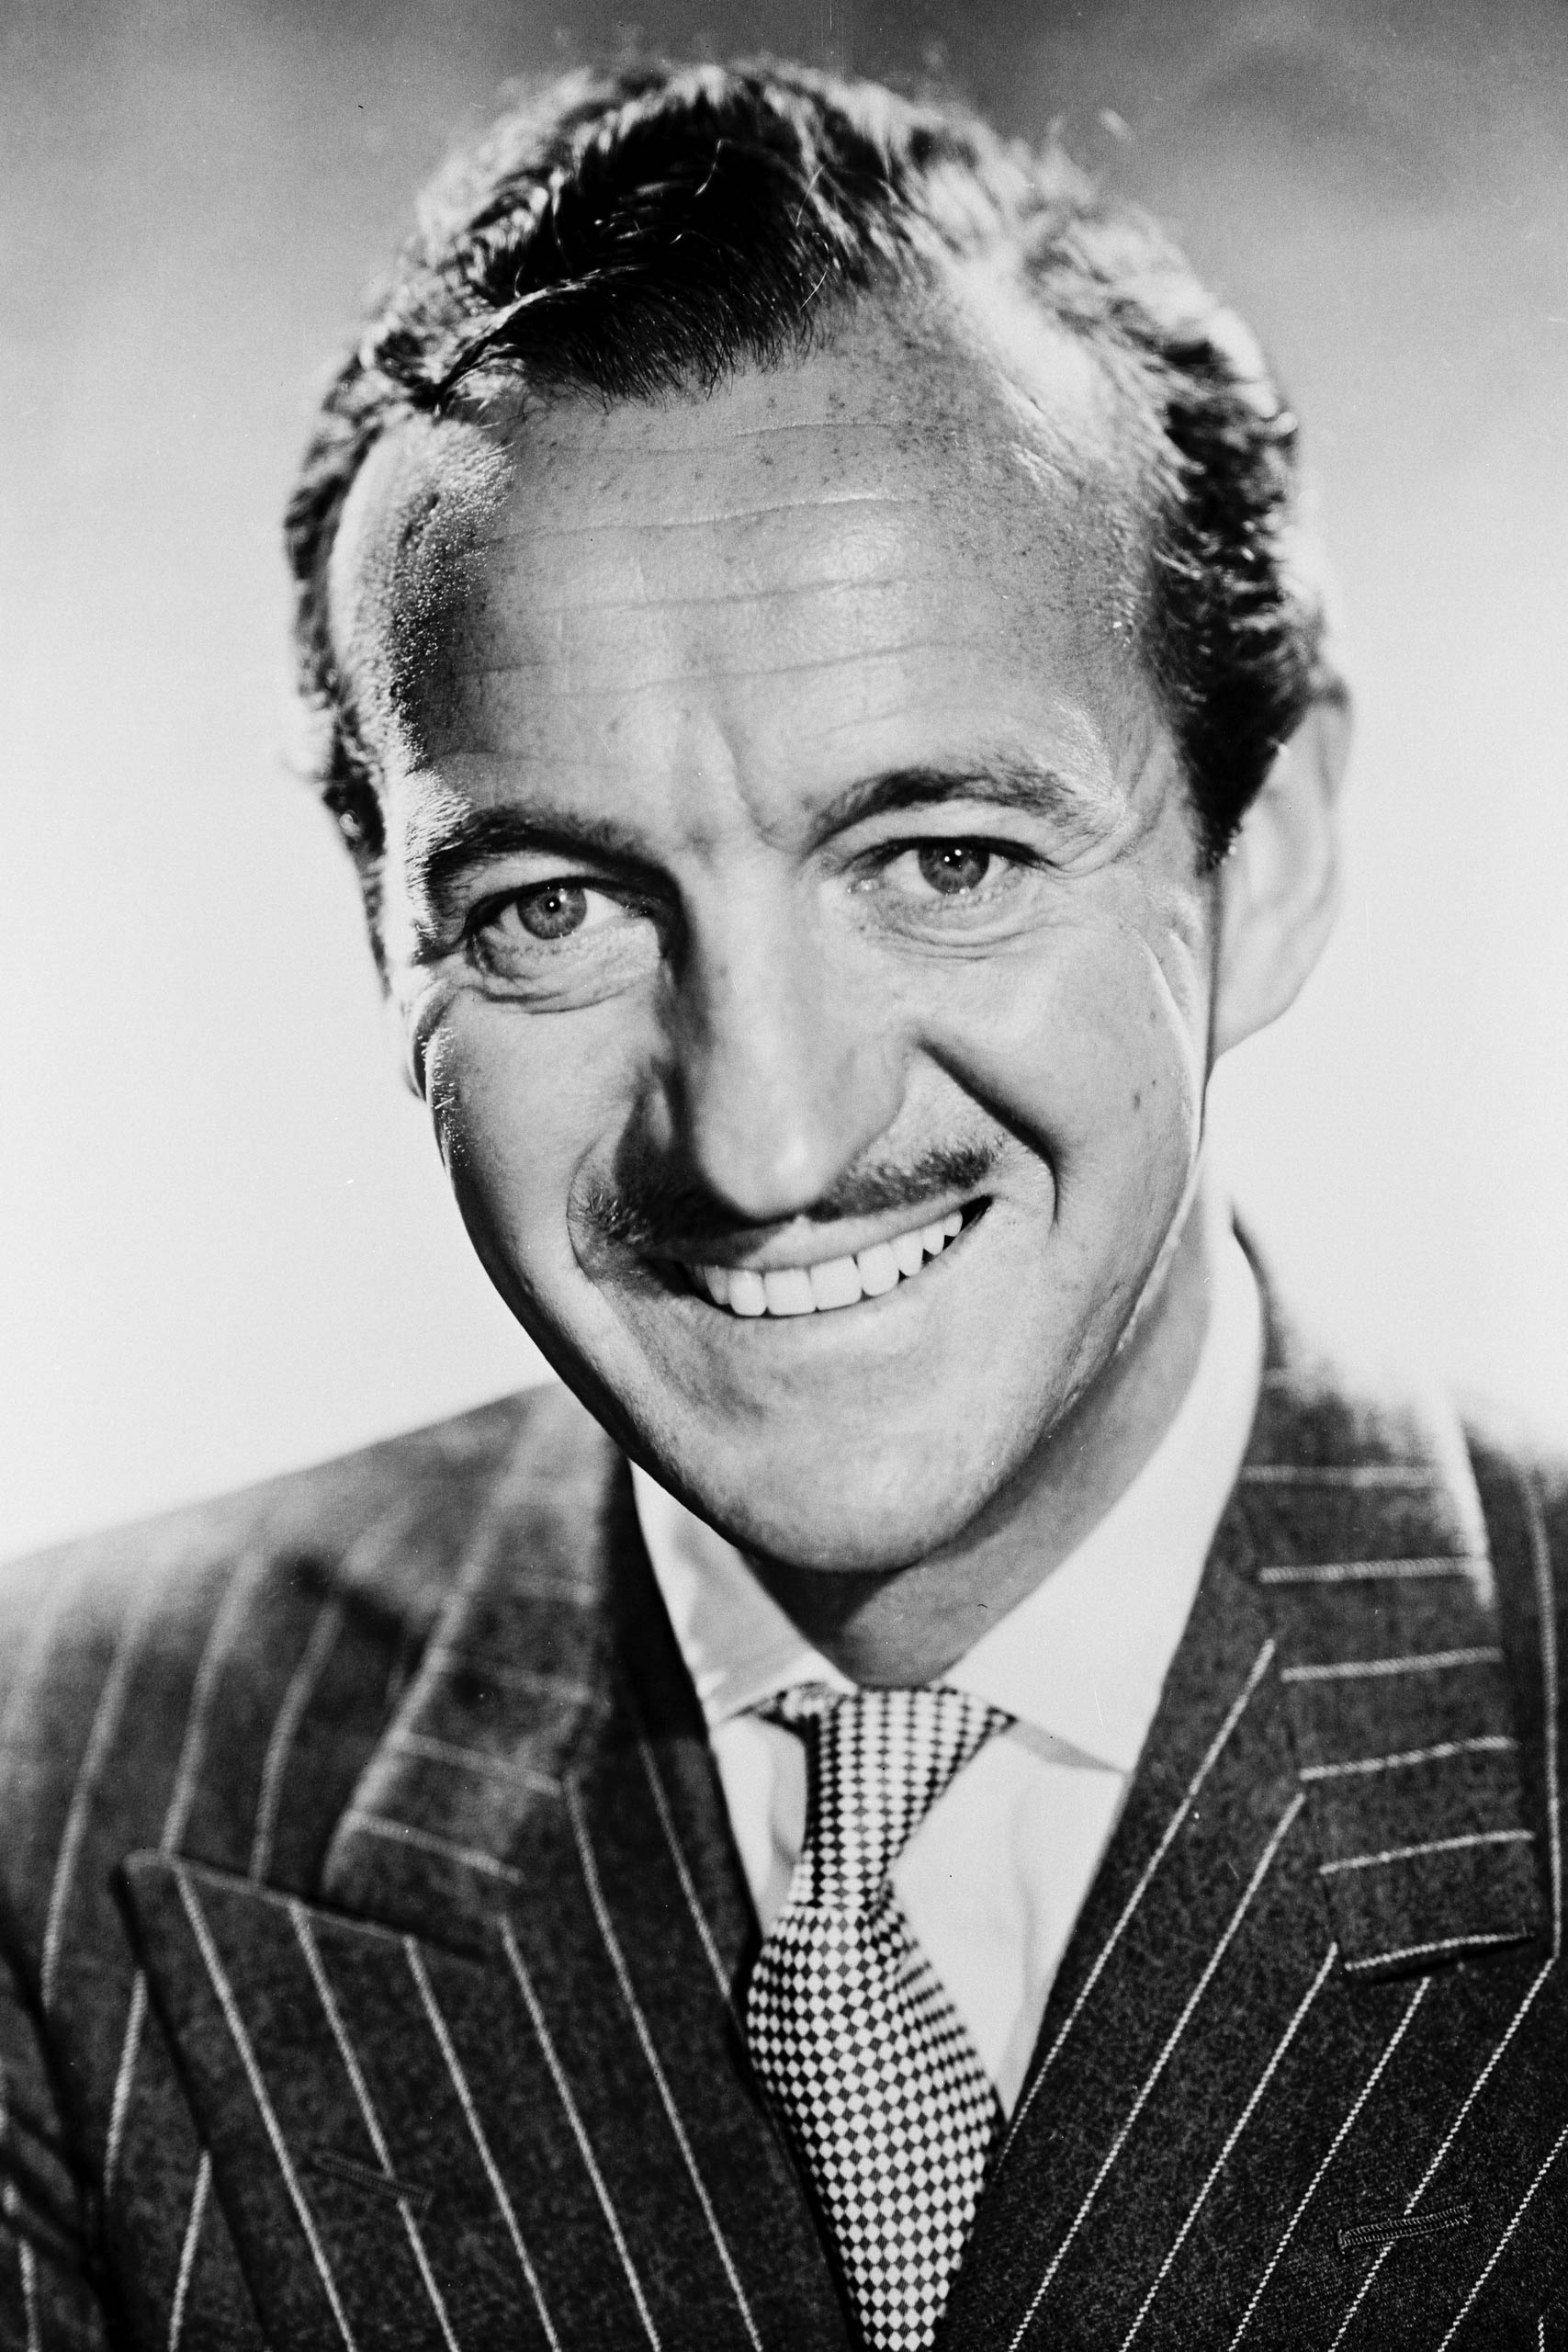 <strong>1959: David Niven - <i>Separate Tables</i></strong>